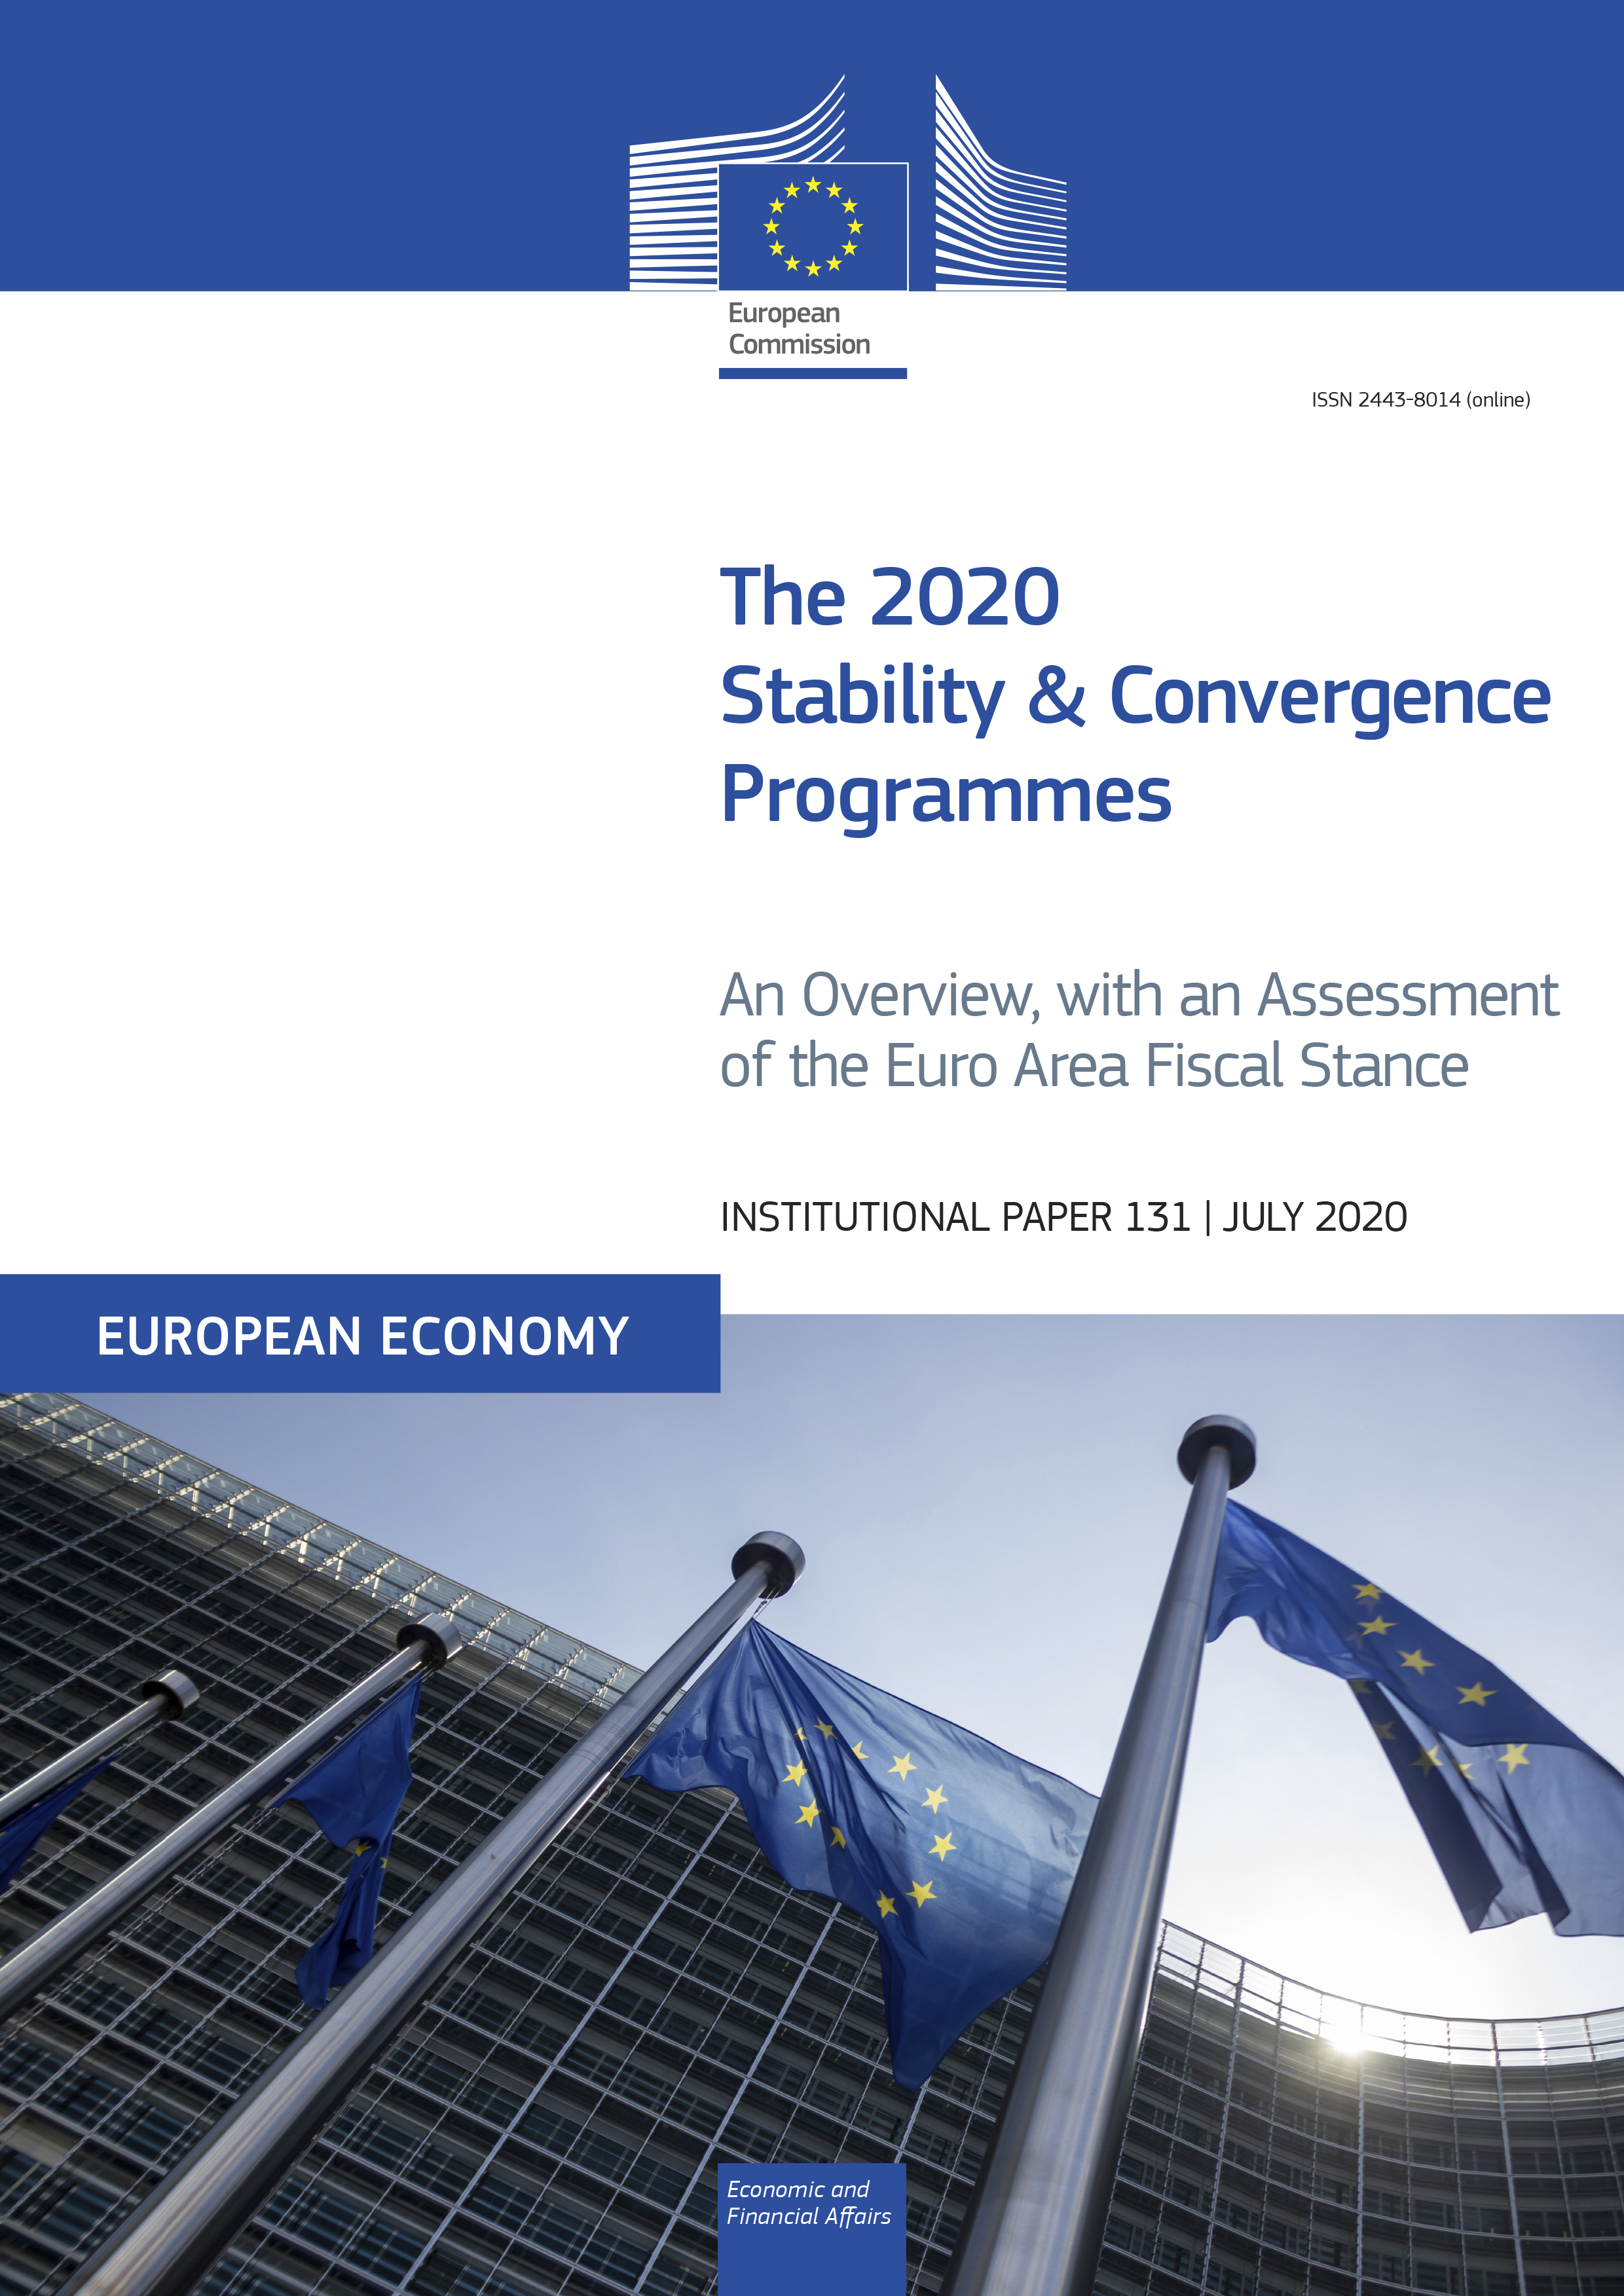 The 2020 Stability and Convergence Programmes: An Overview